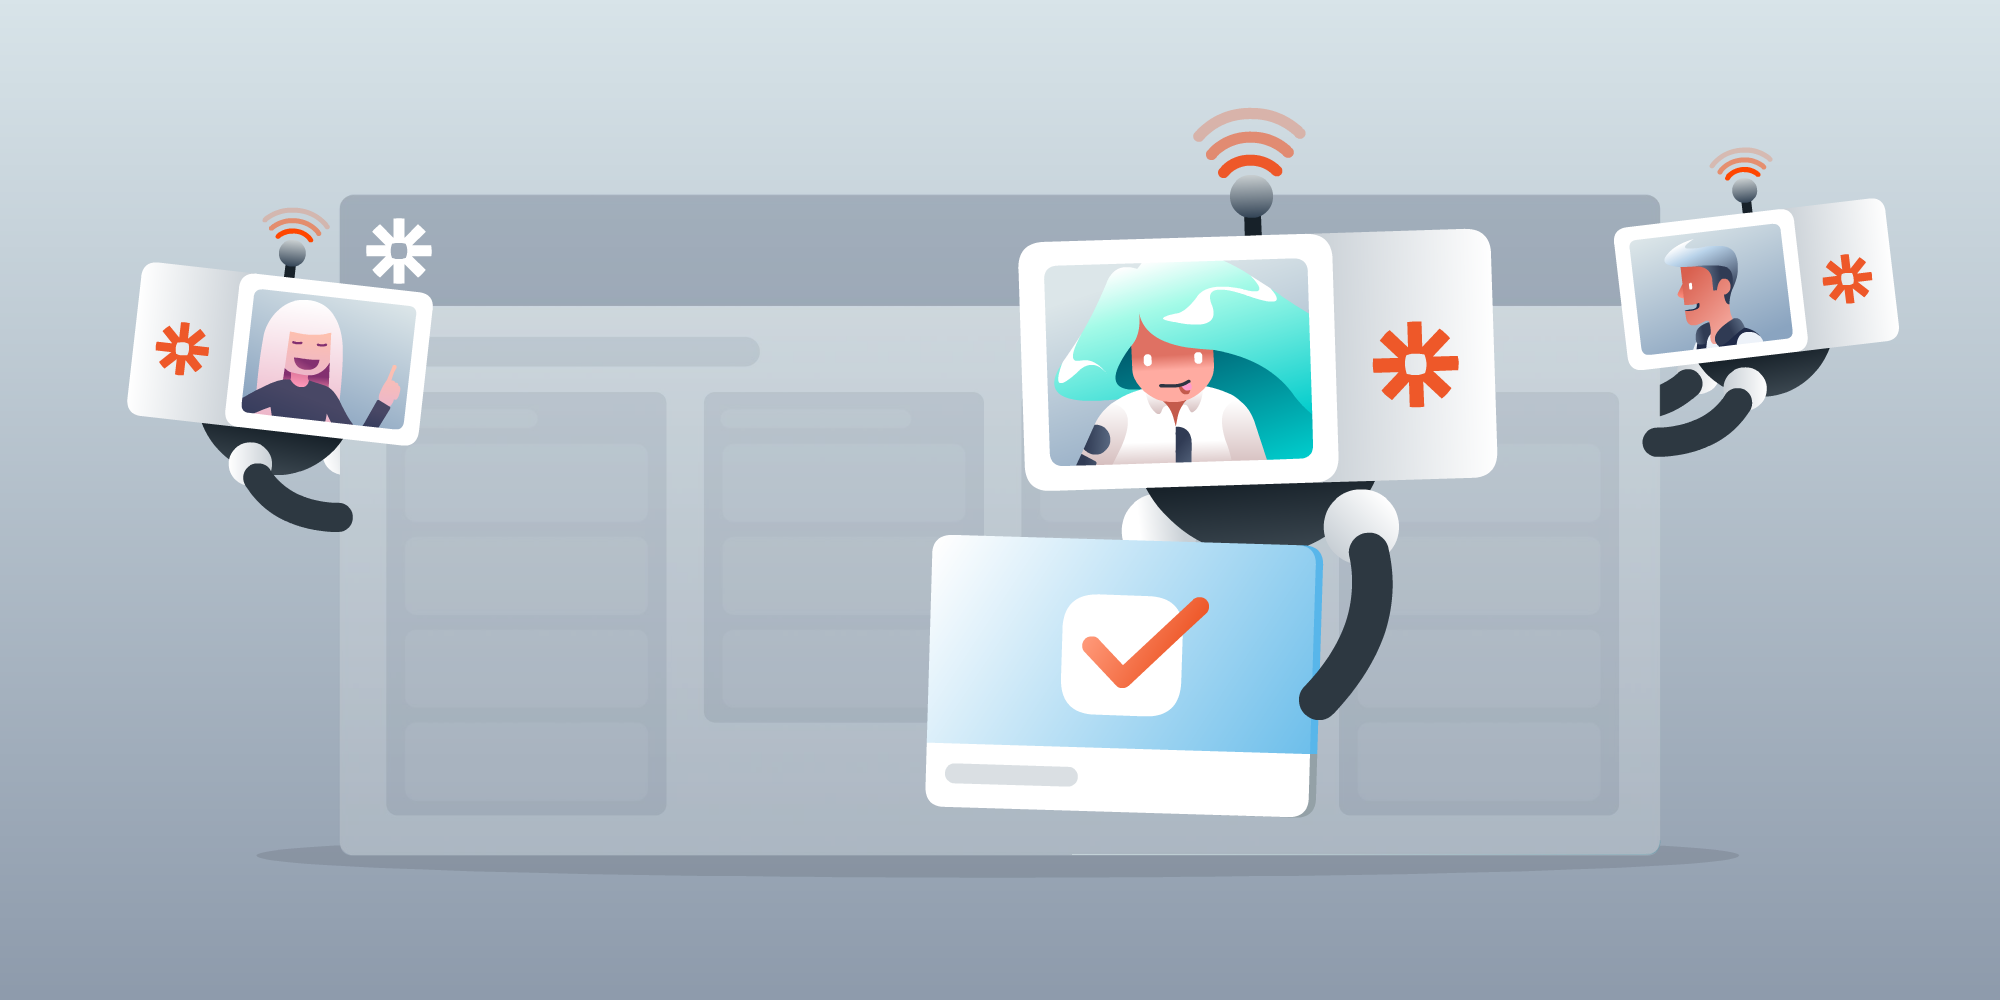 Zapier + Trello for New Employee Onboard and Training Remote Teams